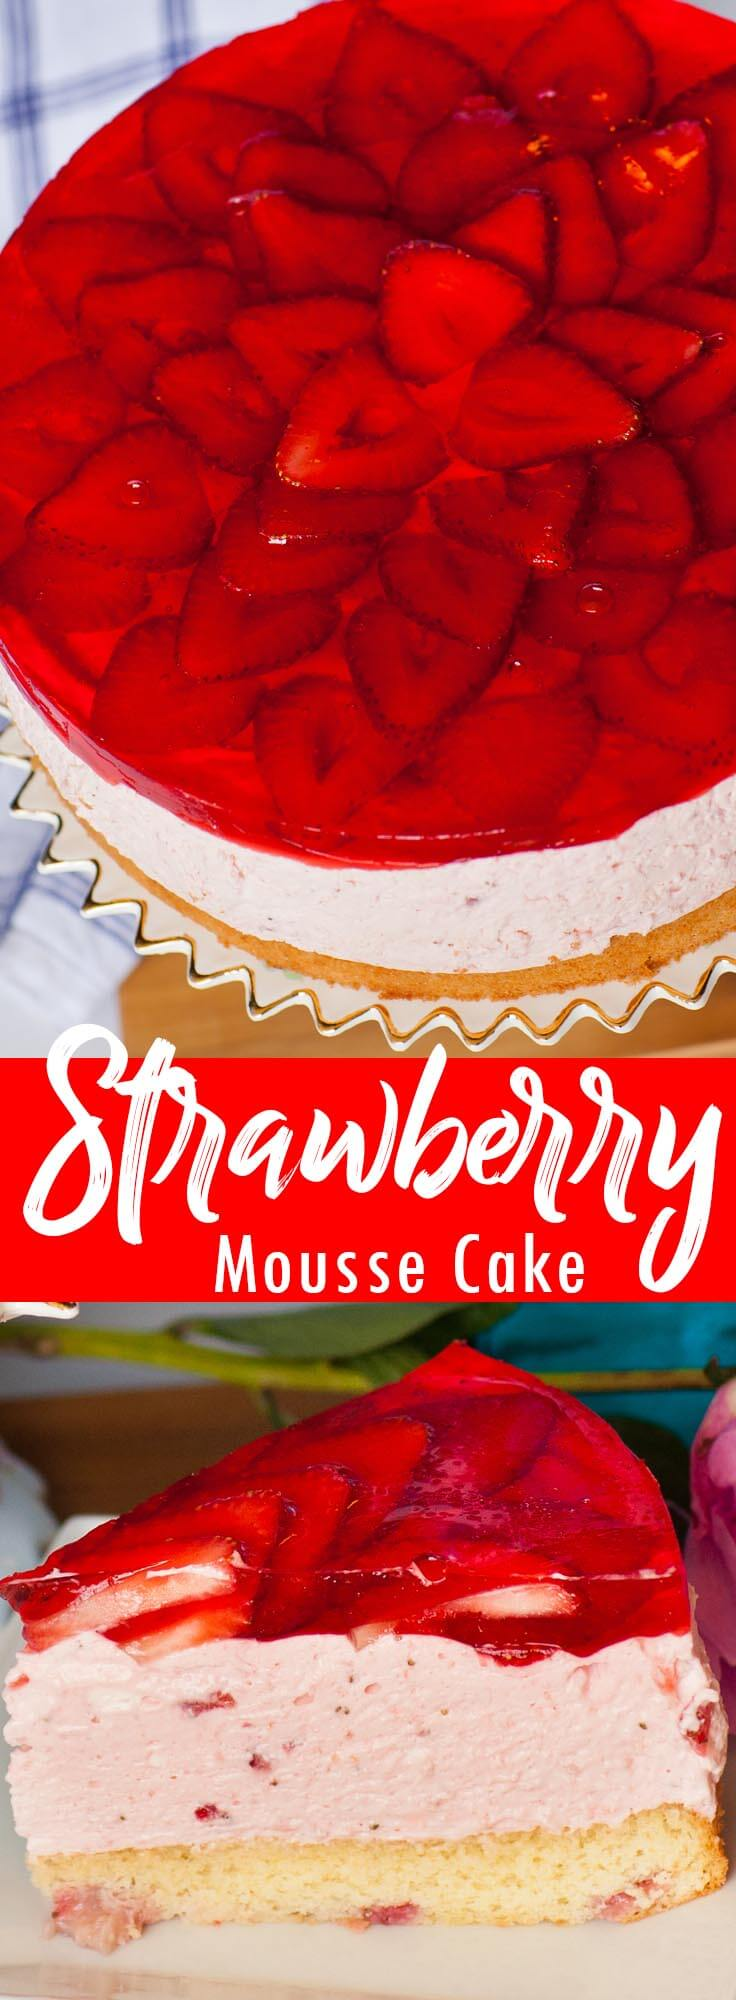 Strawberry Mousse Cake video recipe board